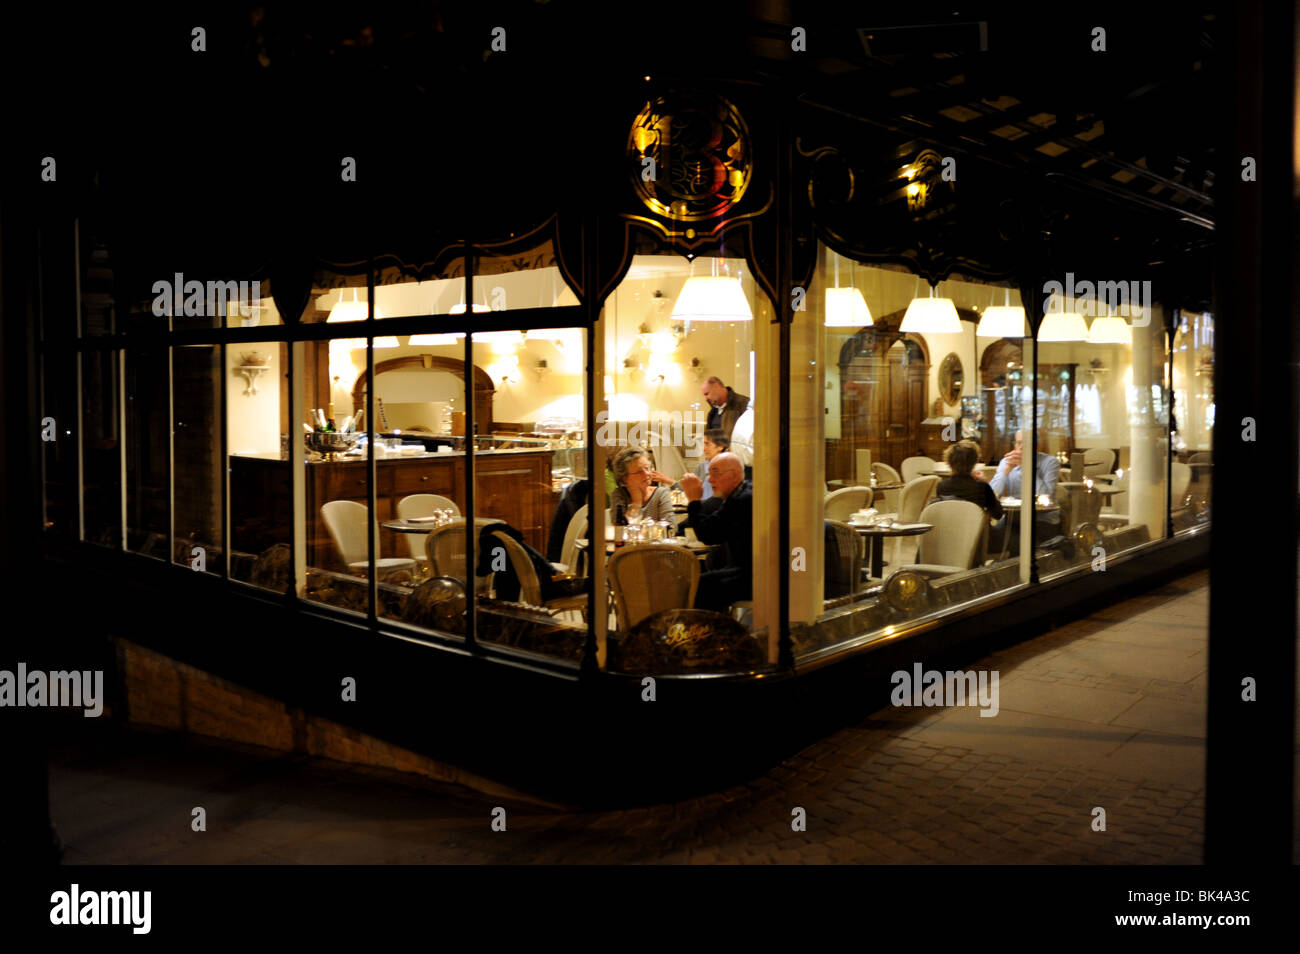 Customers looking out the window of Bettys Cafe and Tea Rooms in Harrogate Yorkshire UK - Stock Image